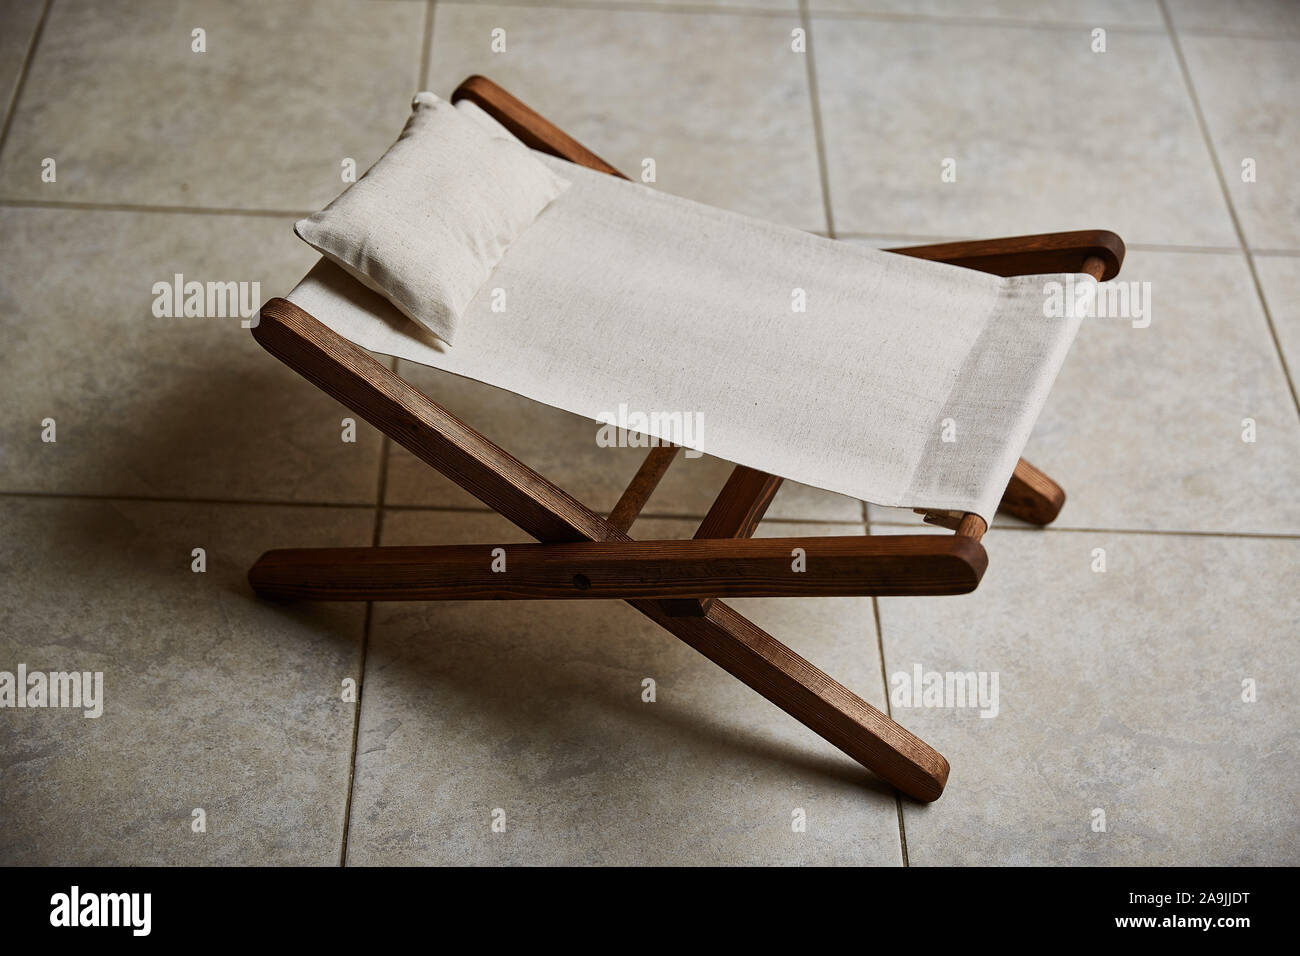 A Wooden Hammock With Beige Linen Fabric Stands On A Ceramic